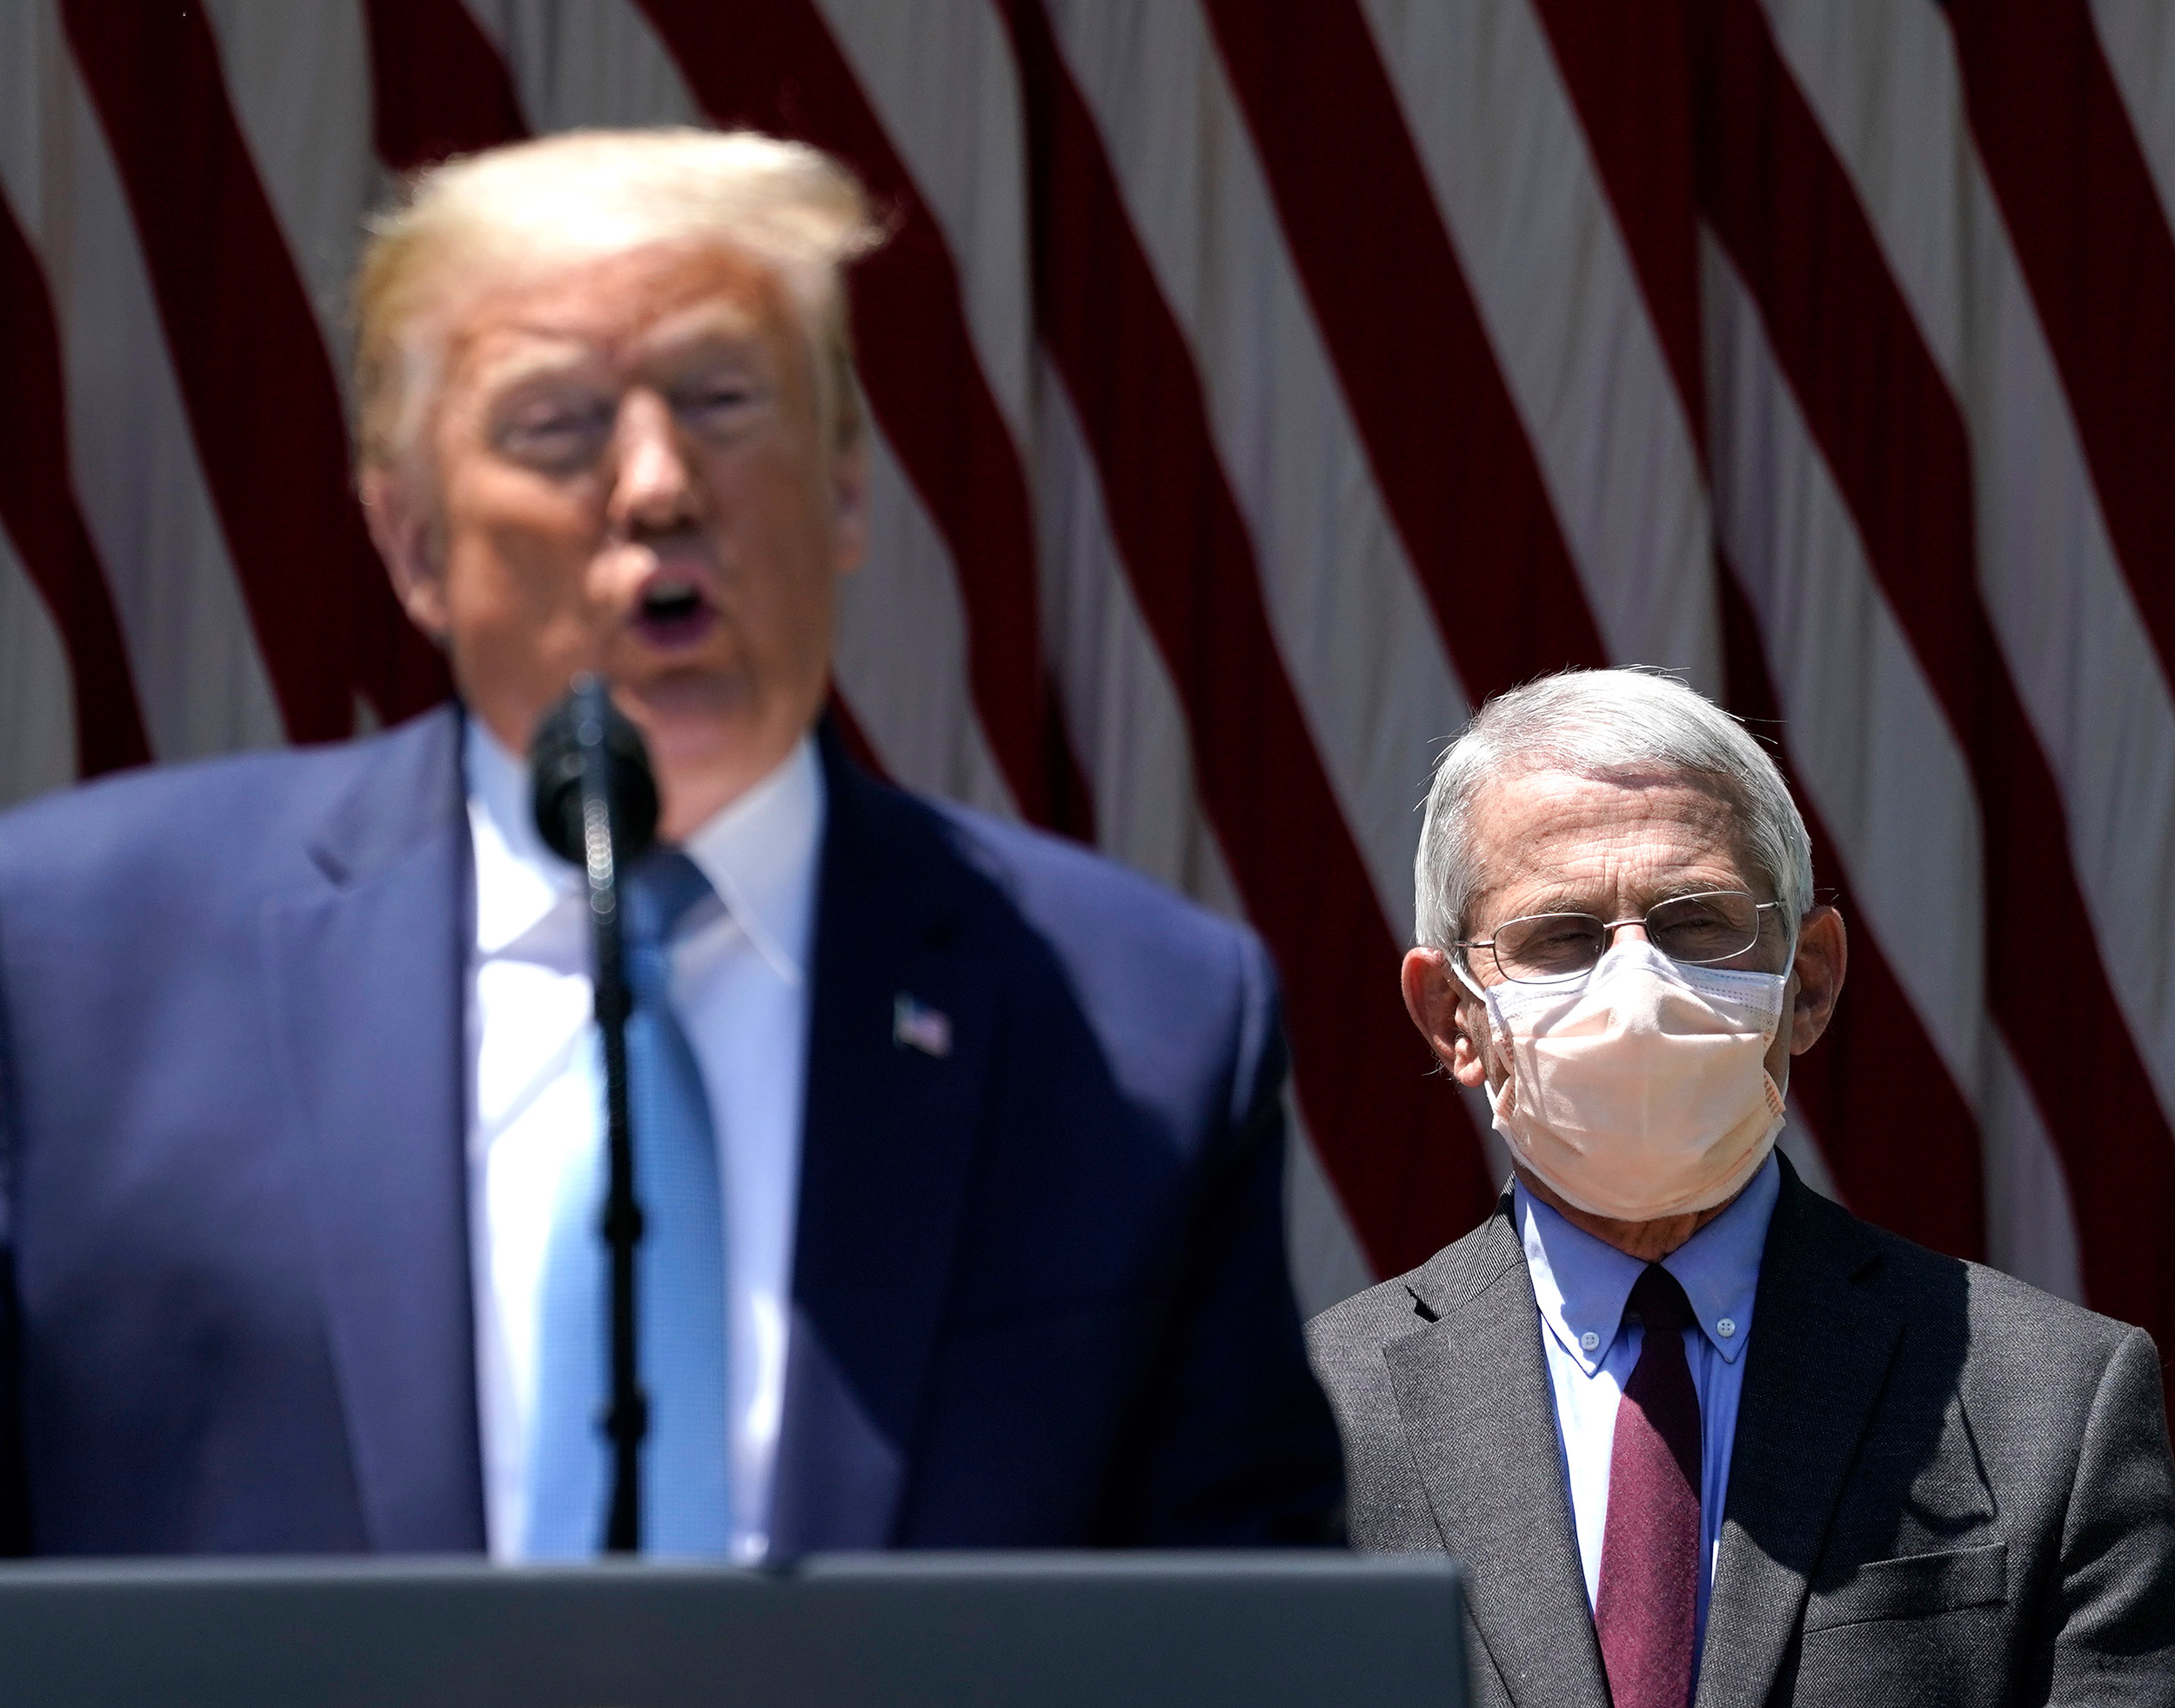 President Donald Trump is flanked by Dr. Anthony Fauci, director of the National Institute of Allergy and Infectious Diseases, while speaking in the Rose Garden of the White House on May 15 in Washington.